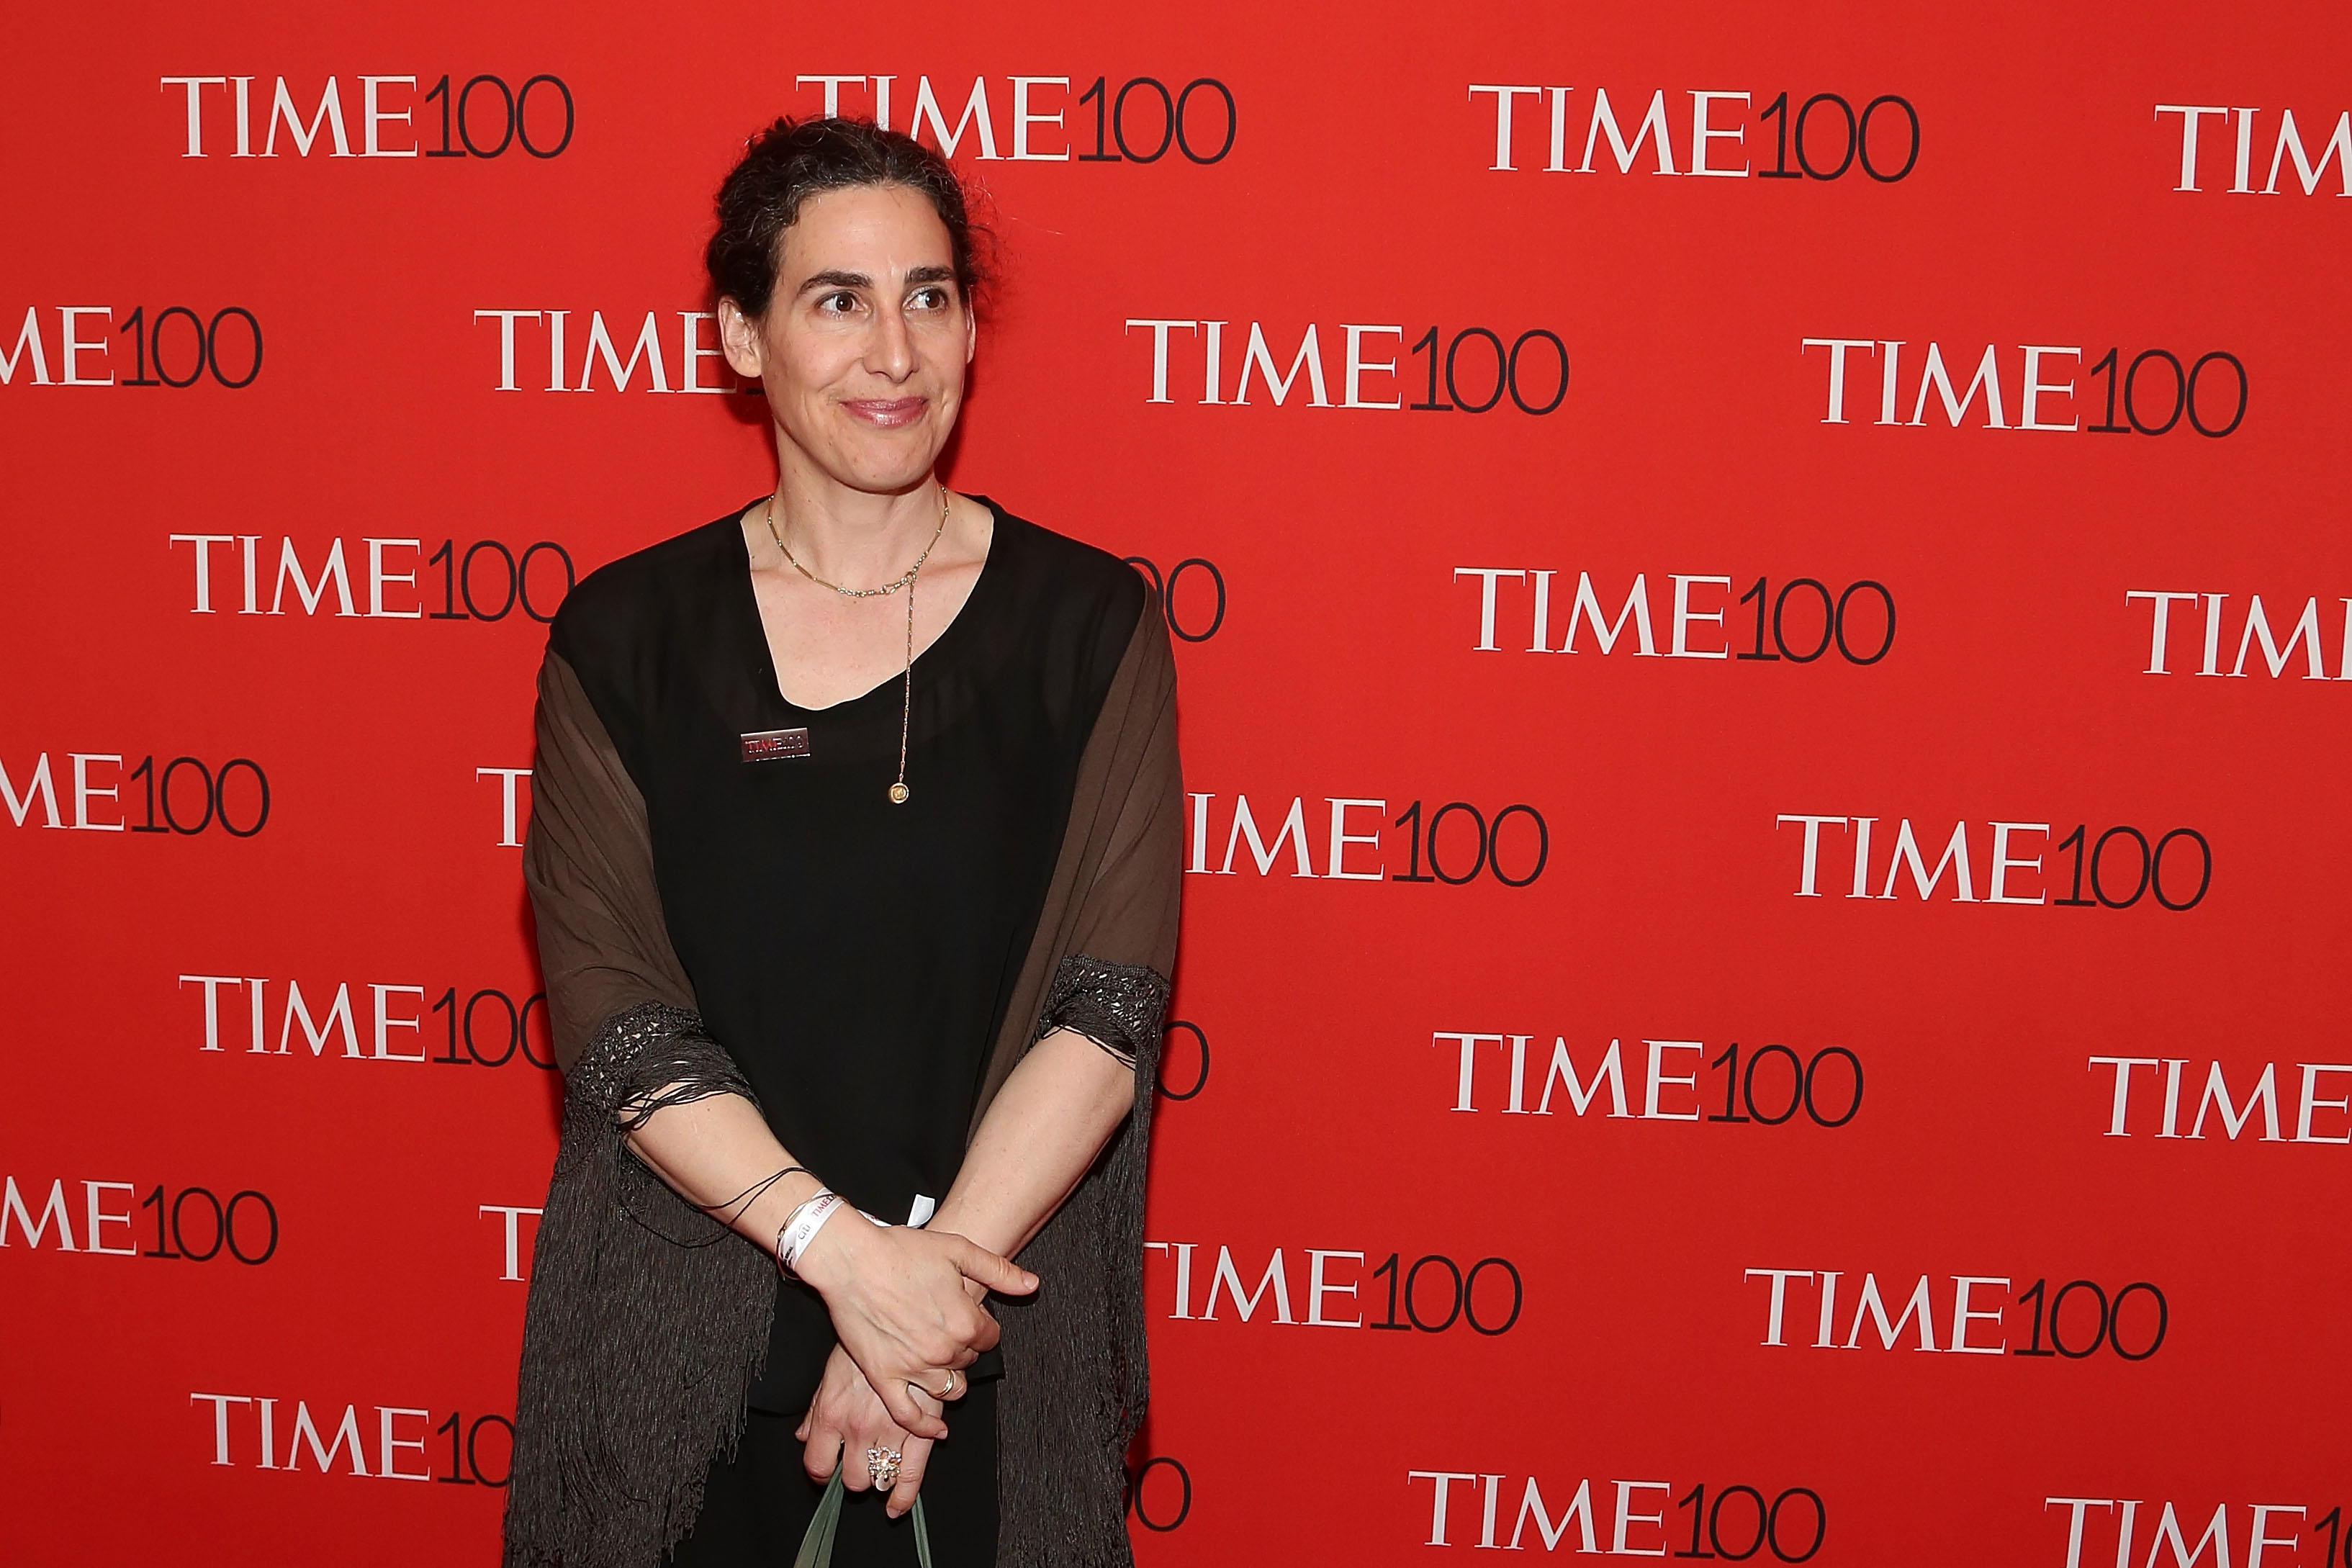 Serial  podcast creator Sarah Koenig attends the 2015 Time 100 Gala at Frederick P. Rose Hall, Jazz at Lincoln Center on April 21, 2015 in New York City.